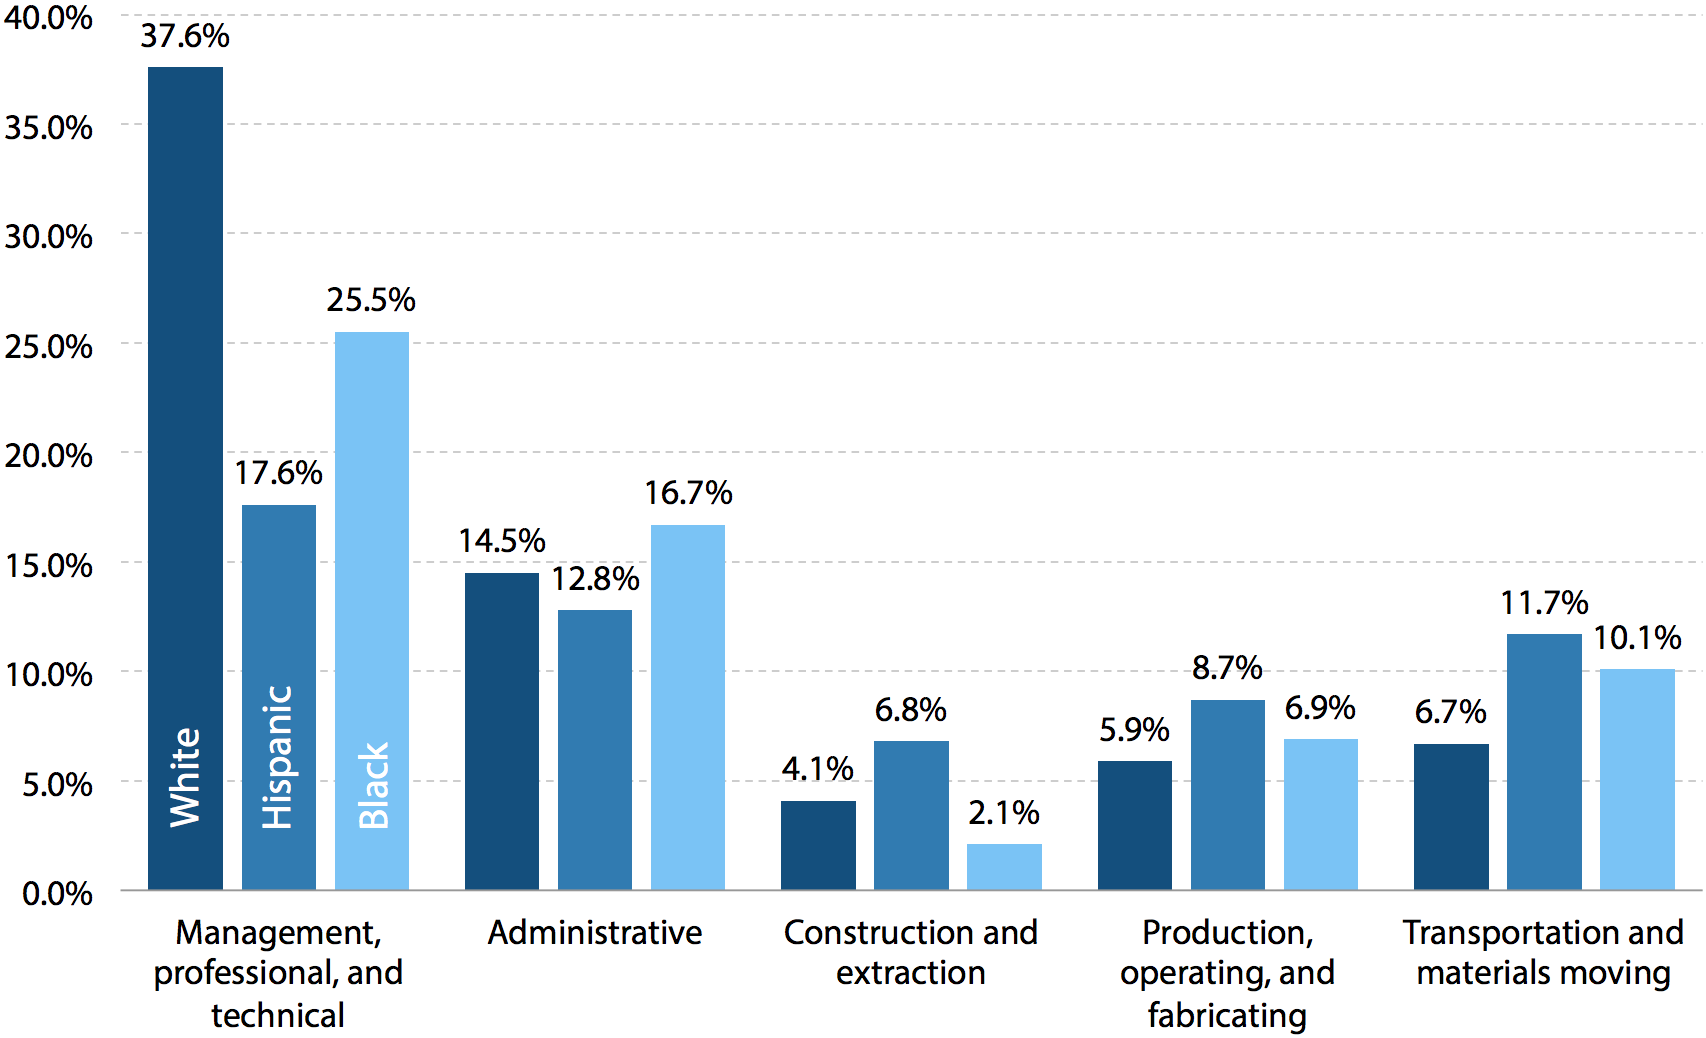 Share of white, Hispanic, and black labor forces in selected occupations, 2009–2011